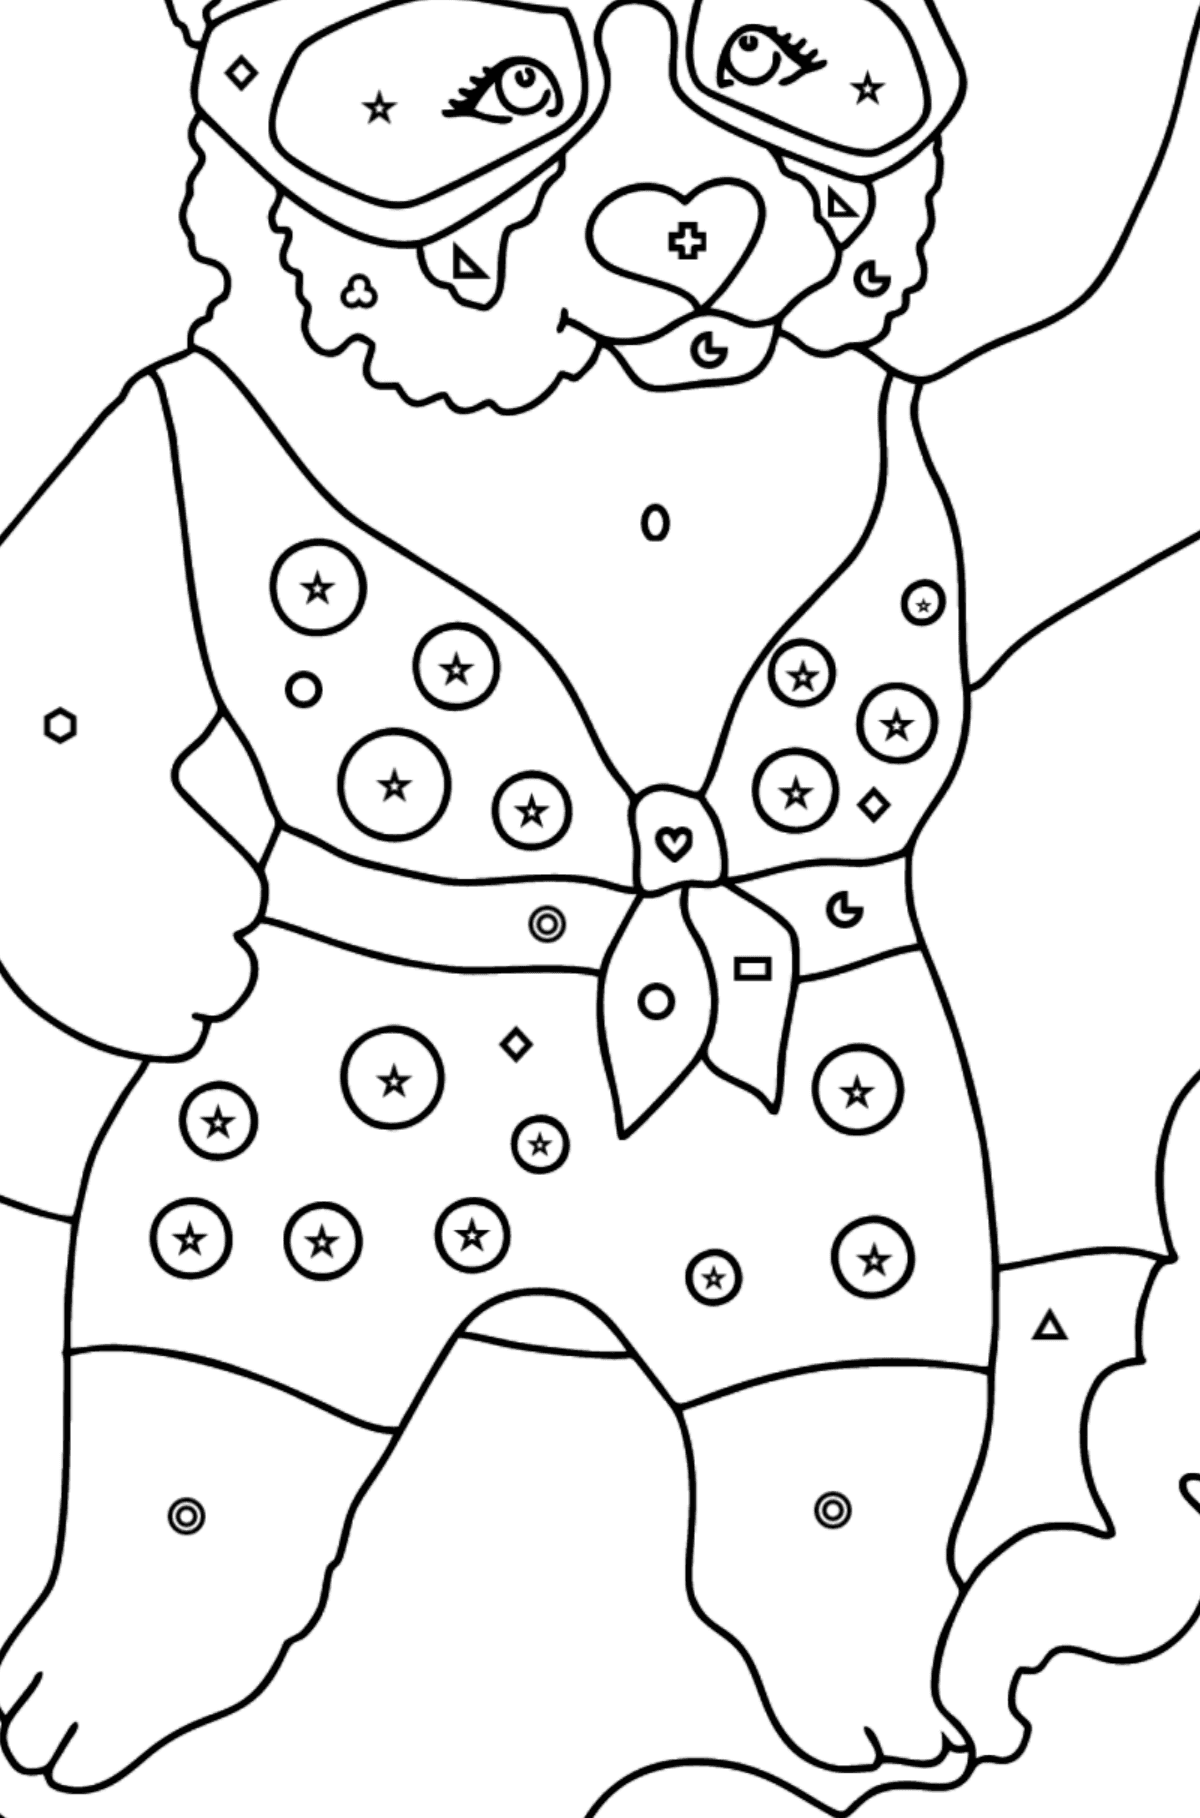 Coloring Page - A Panda is Catching a Wave - Coloring by Geometric Shapes for Kids